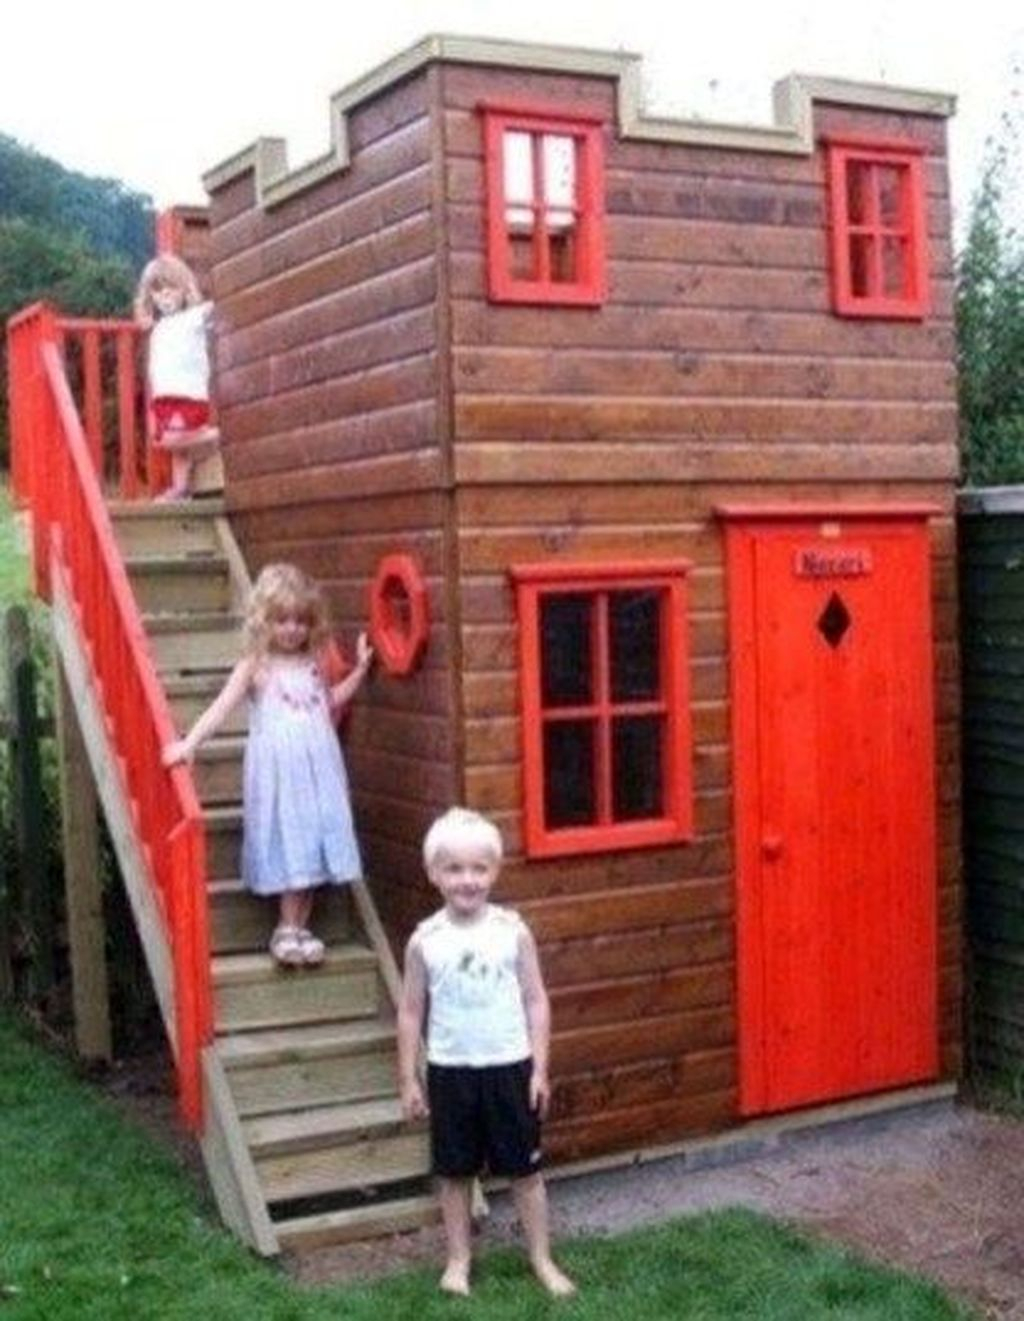 35 Attractive Outdoor Kids Playhouses Design Ideas To Try Right Now